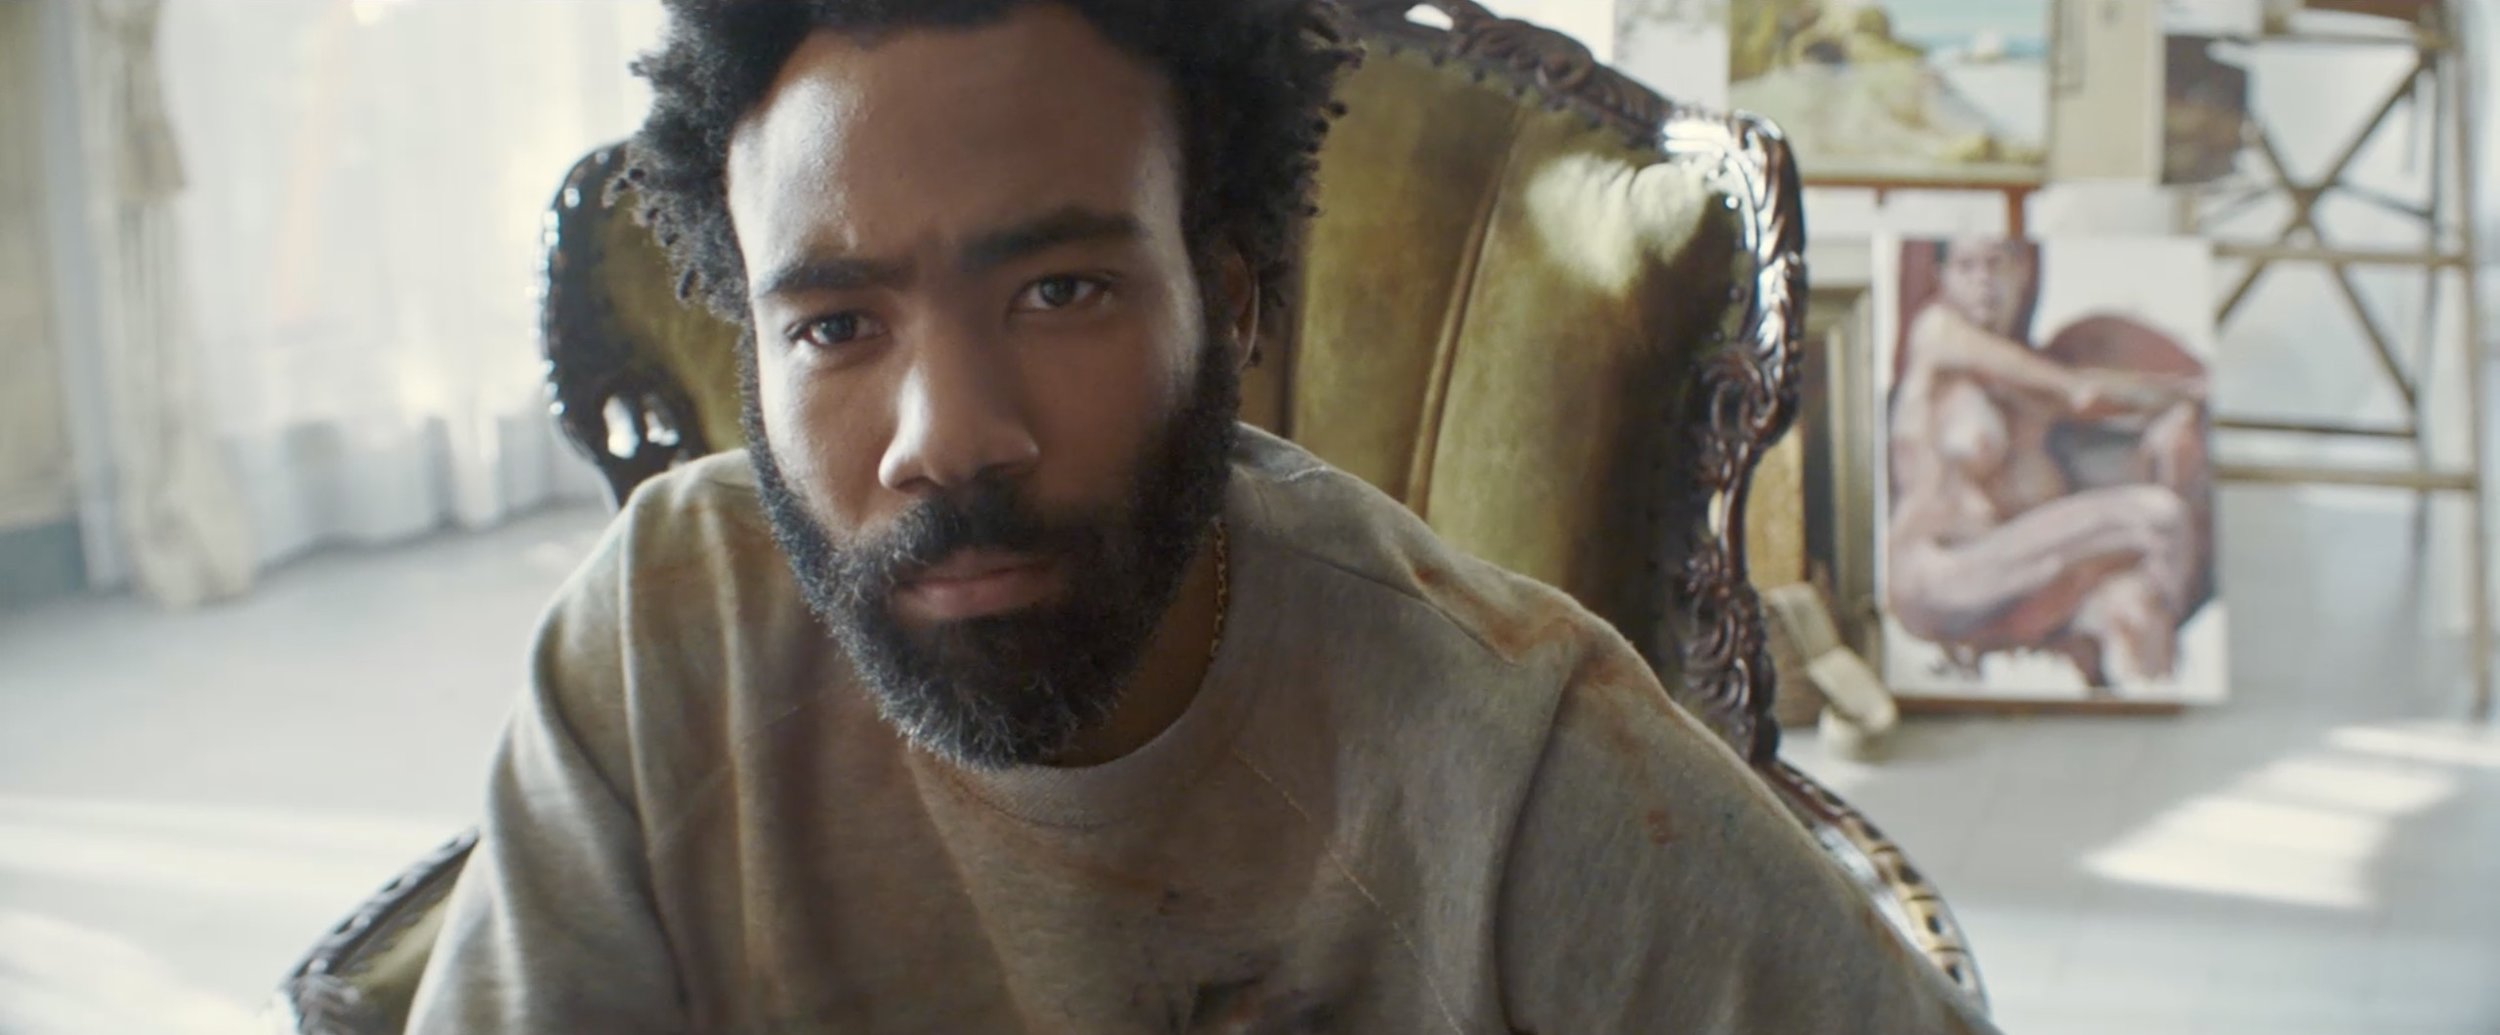 DONALD GLOVER in recent Adidas spots worked on by Sing J Lee & Sylva Zakhary